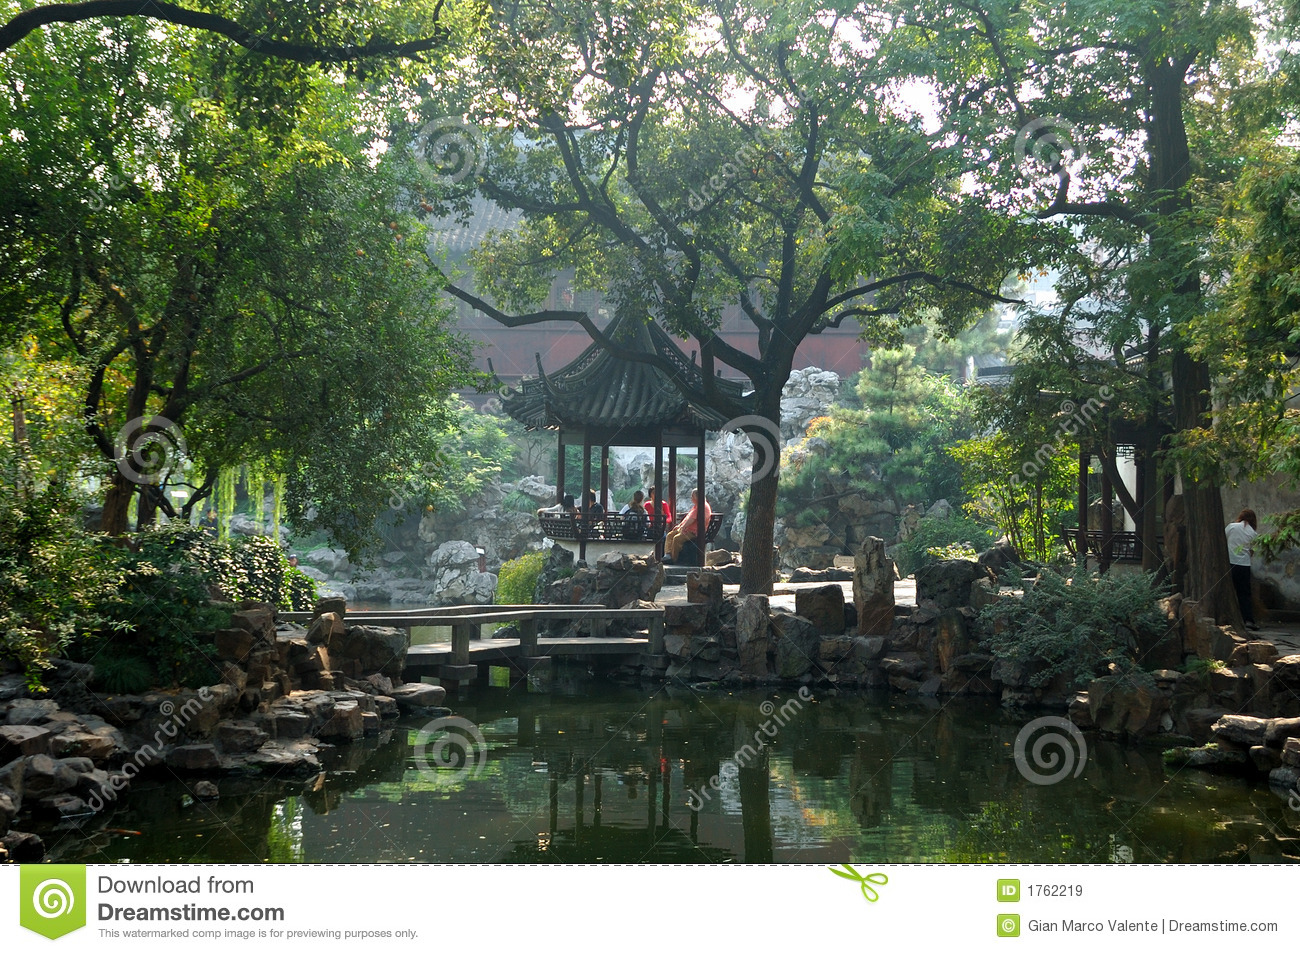 Jardin chinois images libres de droits image 1762219 for Jardin chinois